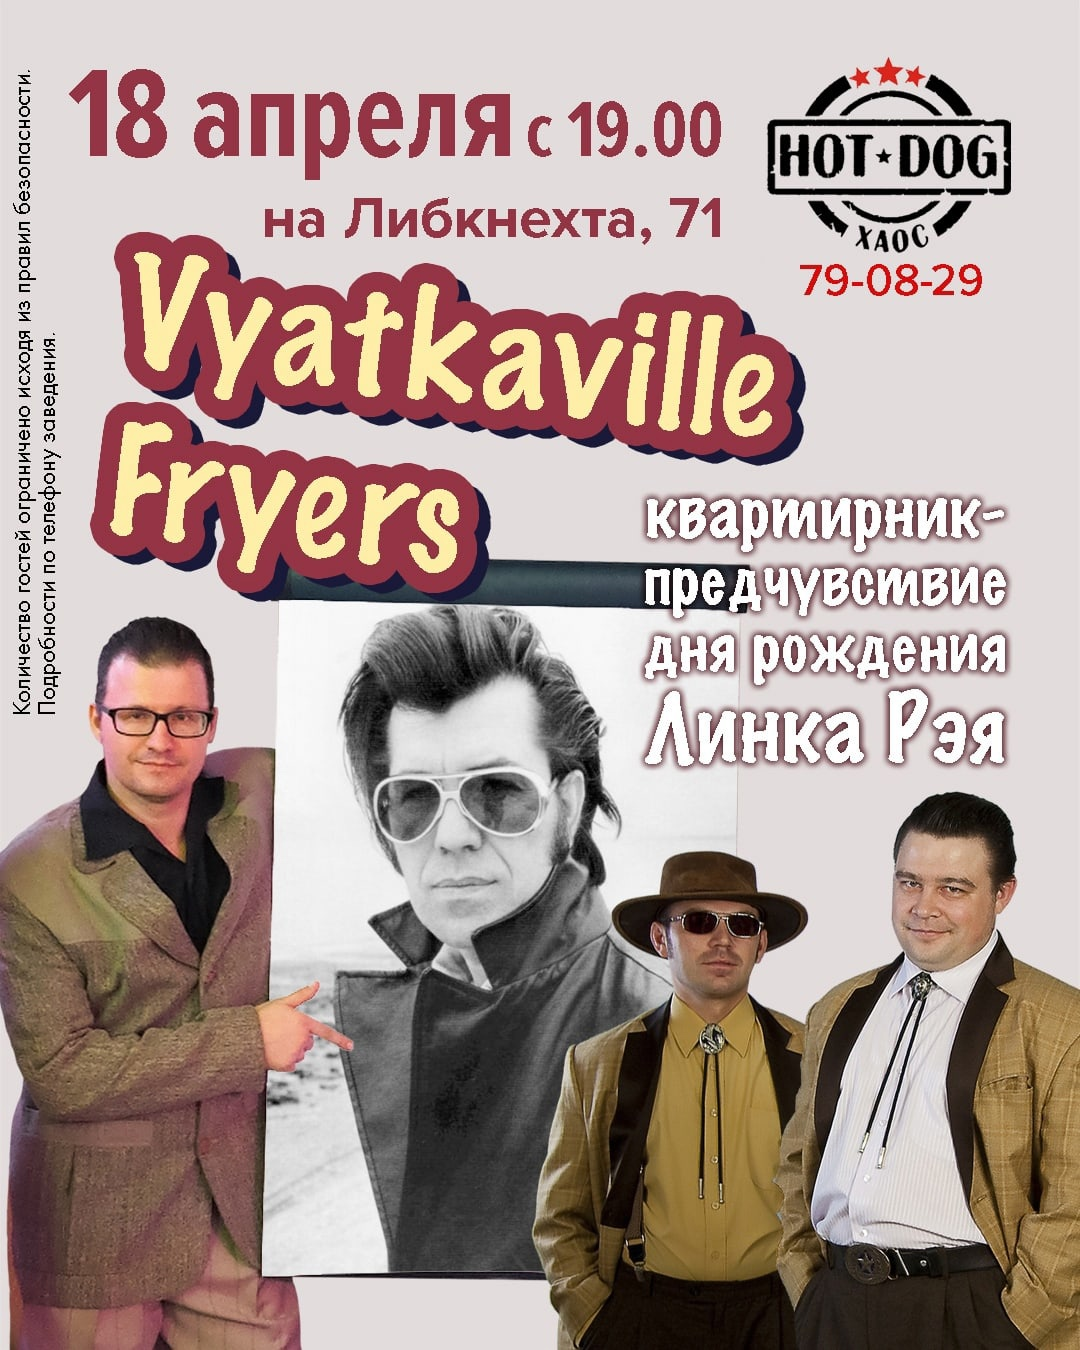 18.04 Rommitz & the Ol' Time Shakers в кафе Hot Dog House!